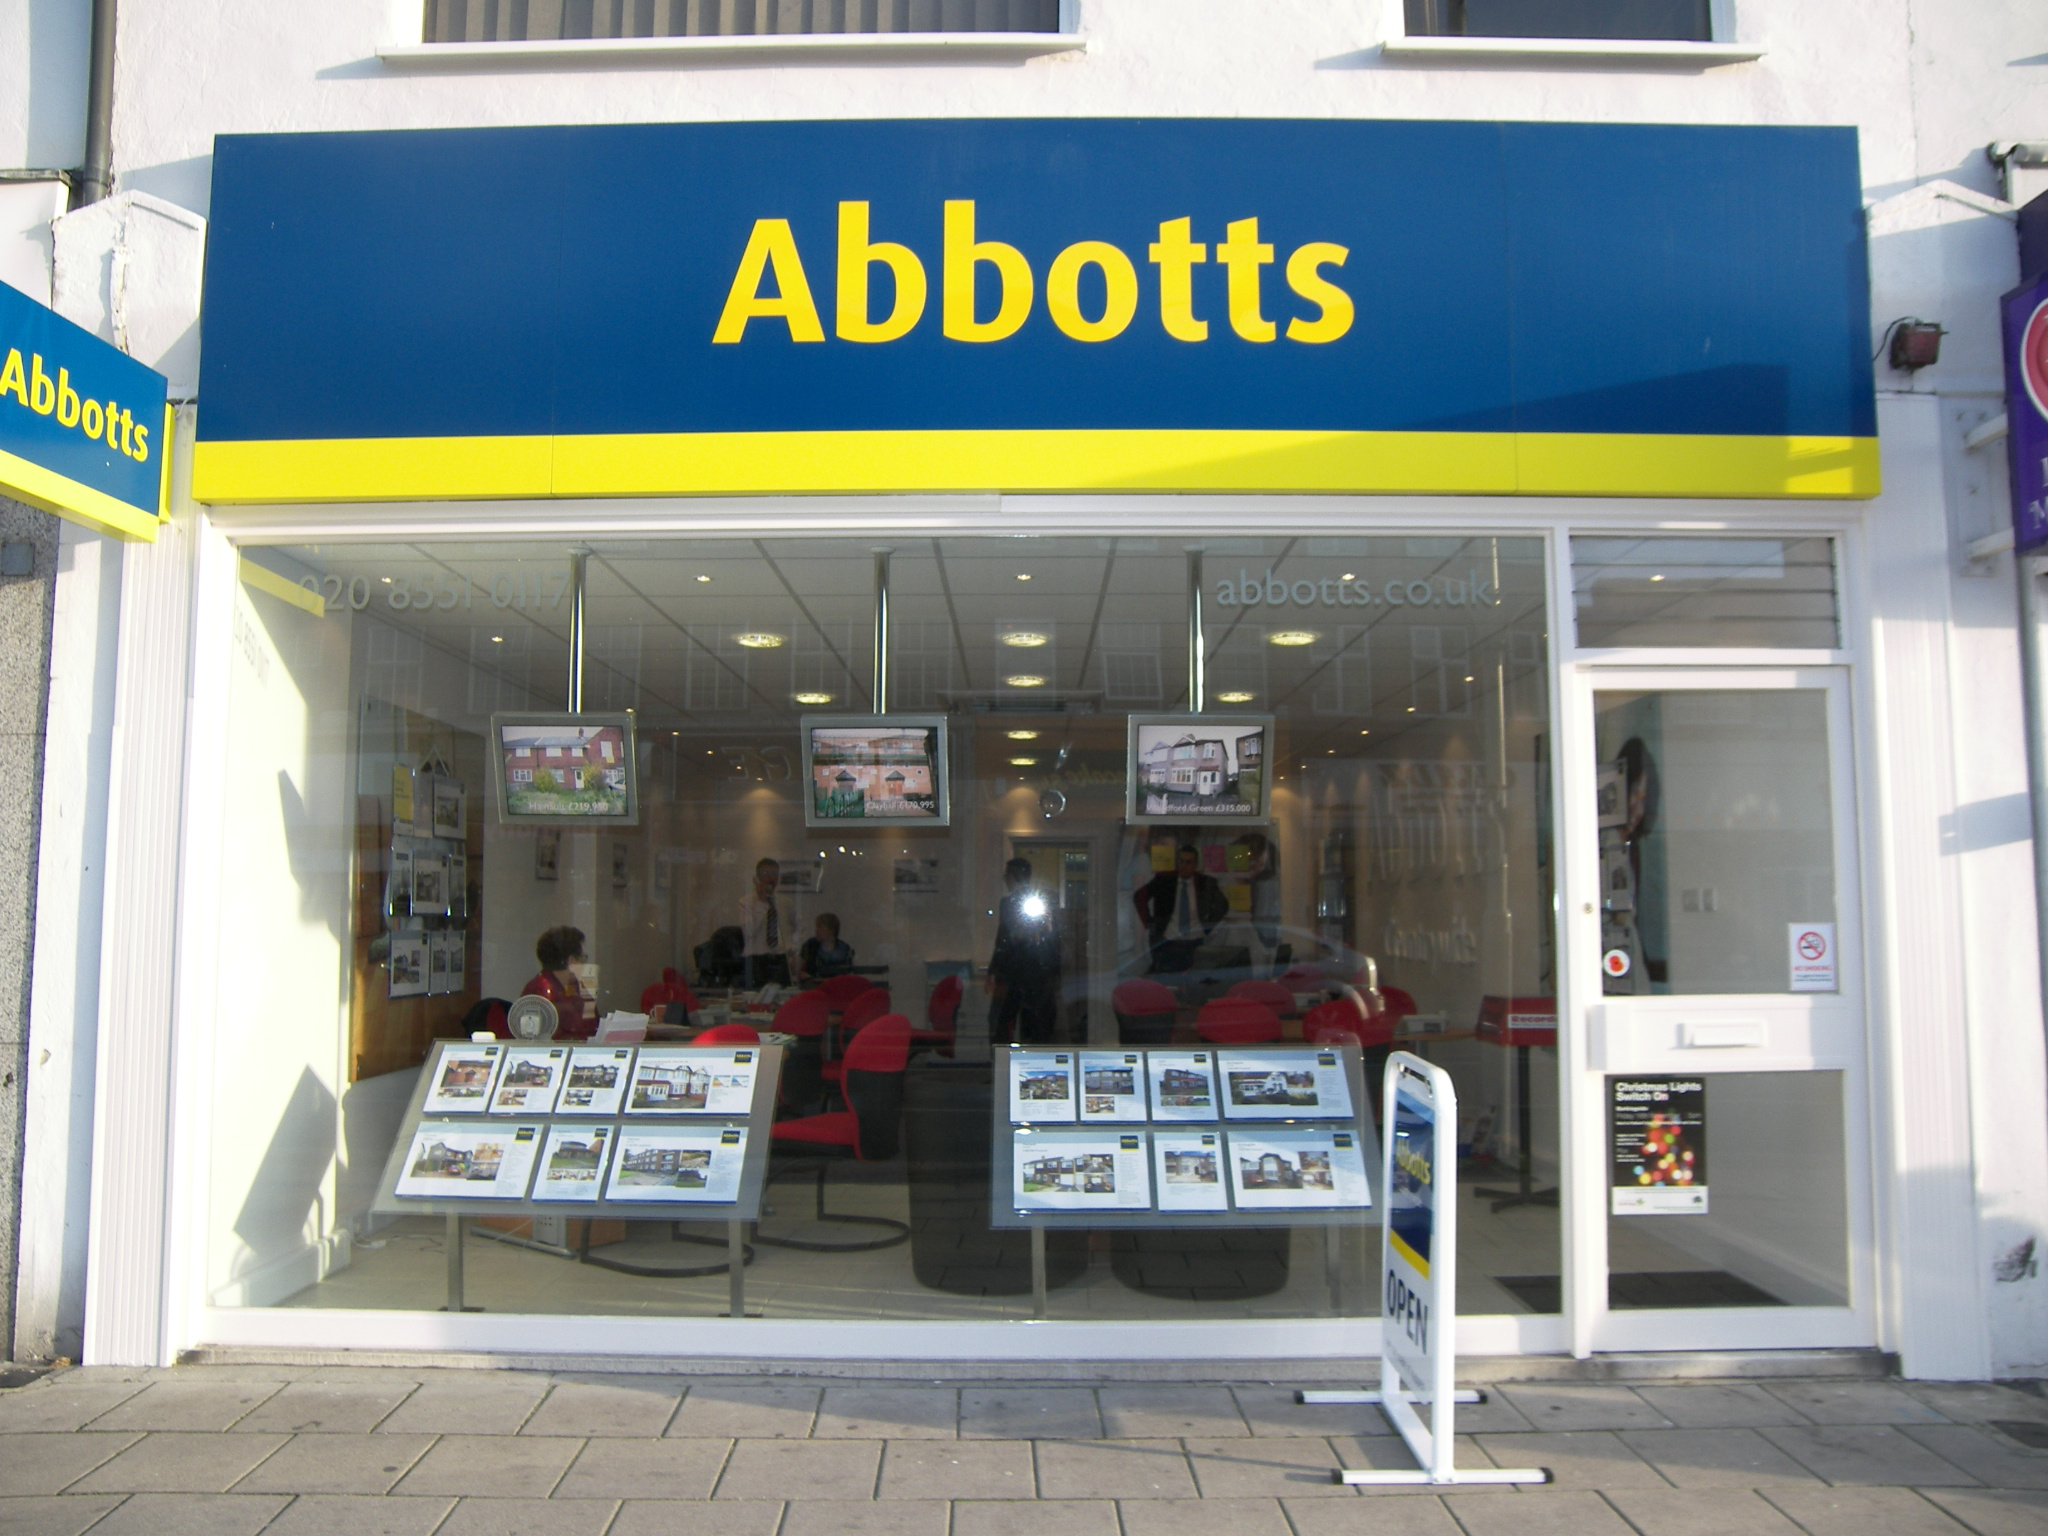 Abbotts Countrywide Estate Agents In Ilford Ig6 2dj